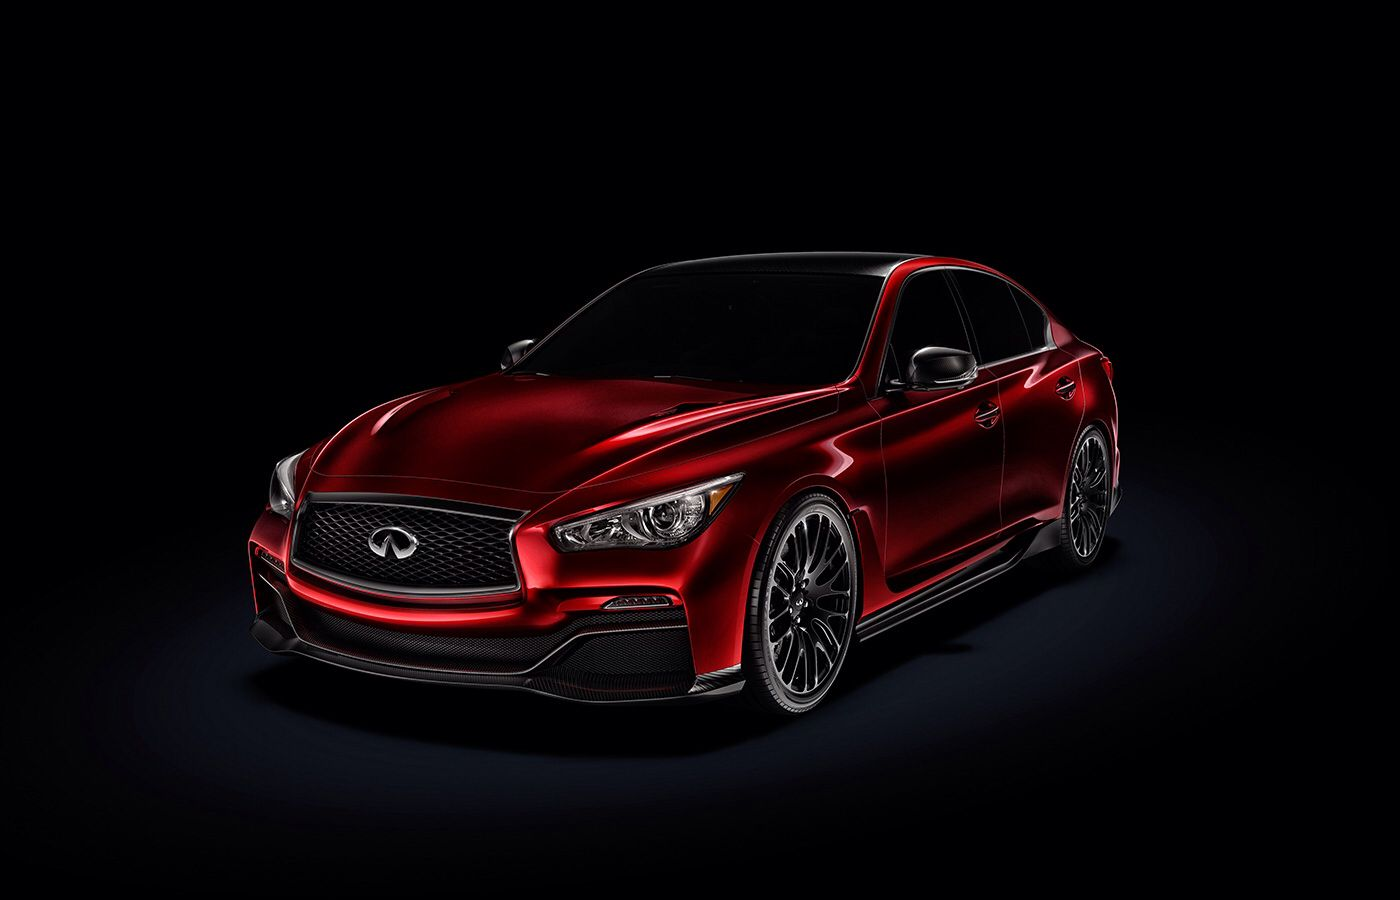 2018 Infiniti Q50 Red Sport 400 first drive The Japanese